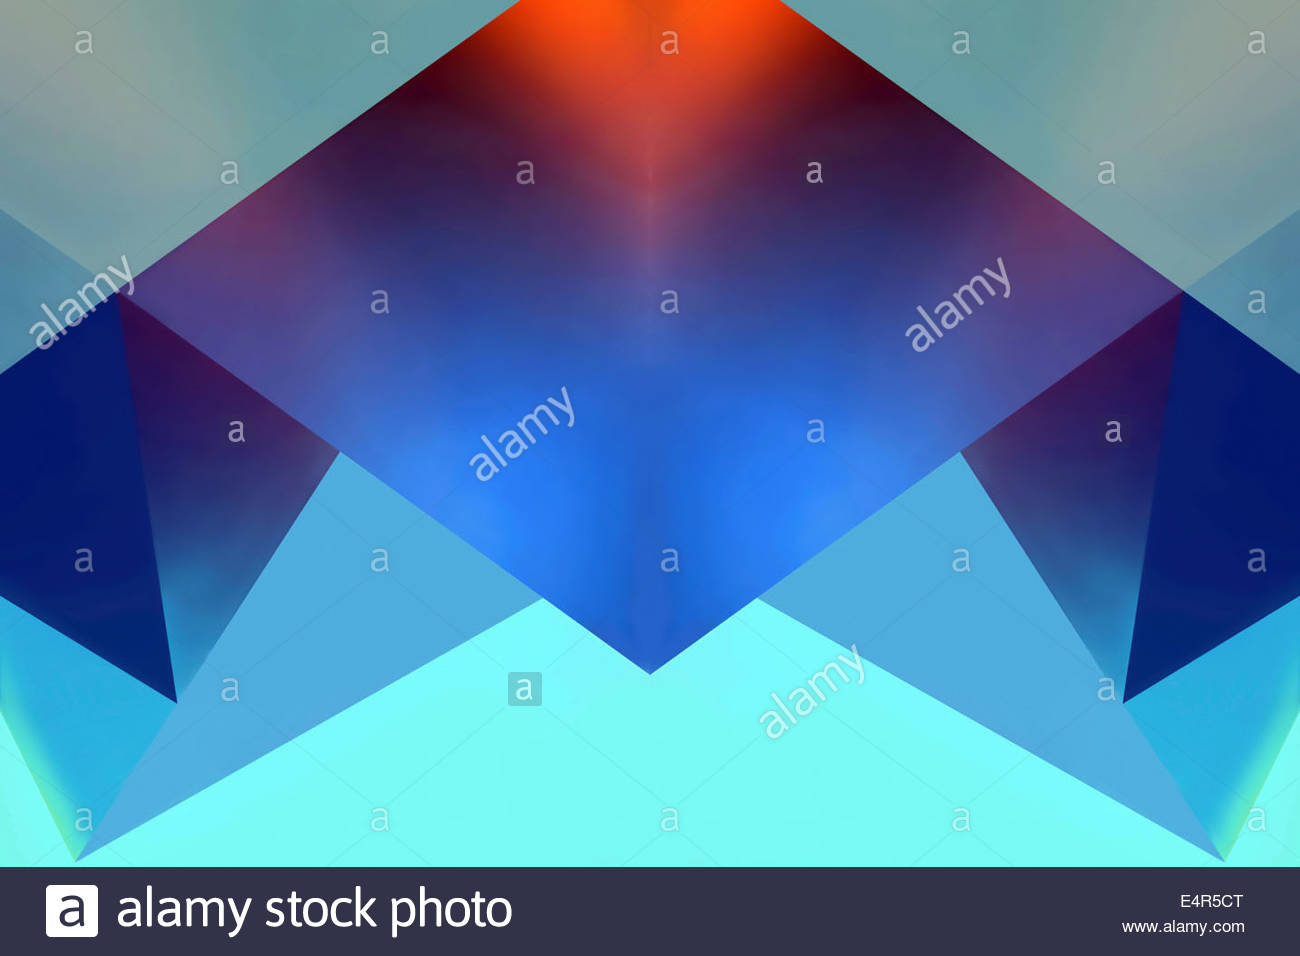 Abstract backgrounds pattern of symmetrical geometric shapes - Stock Image